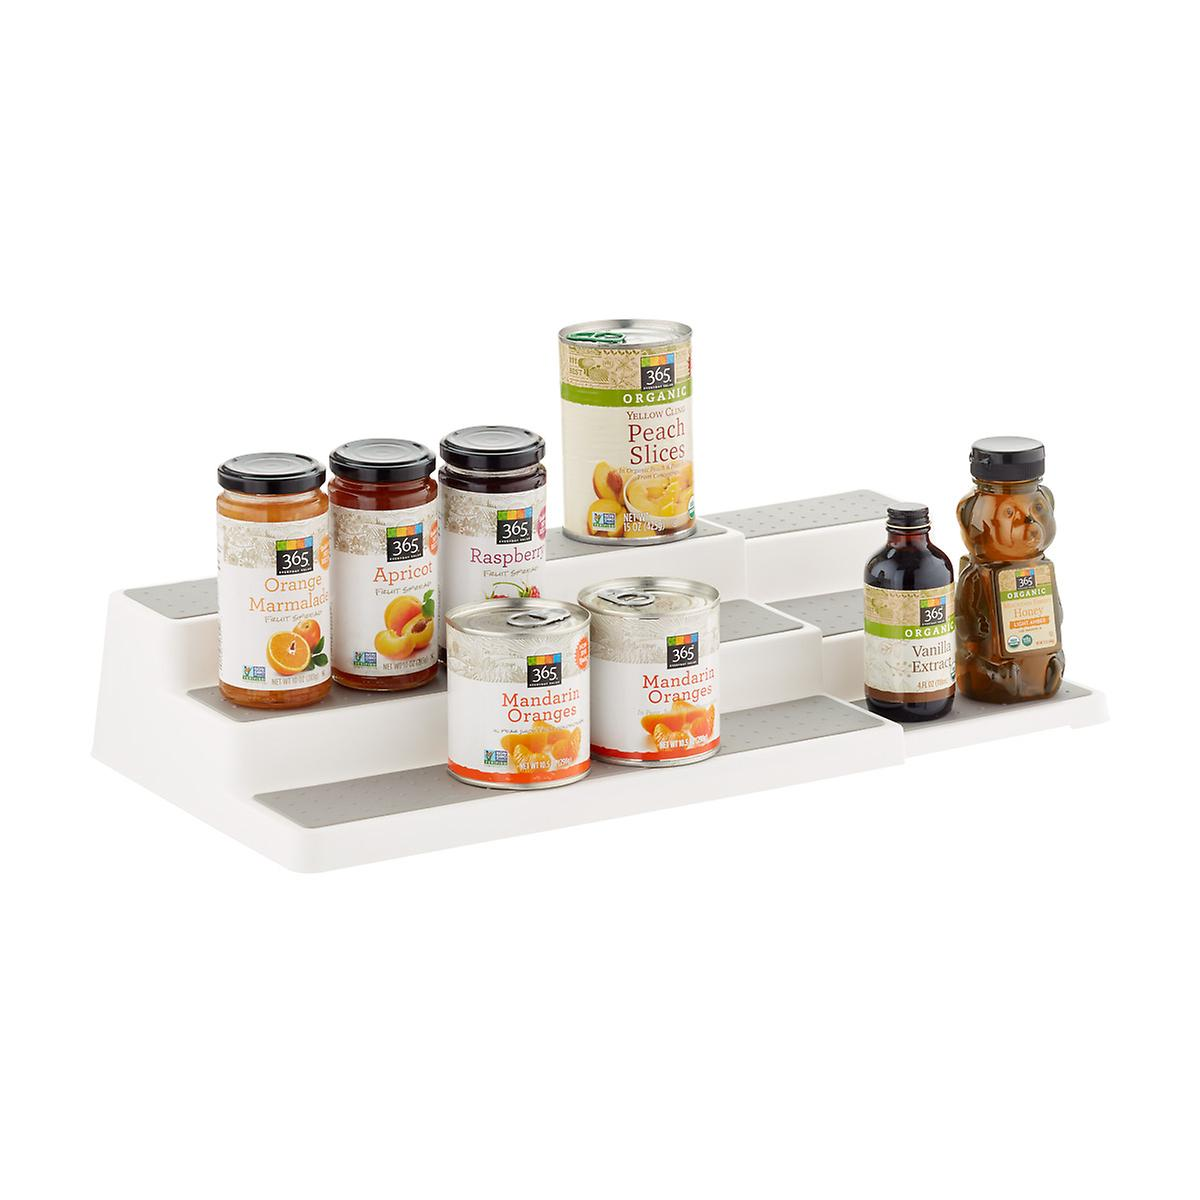 madesmart Expandable Pantry Shelf & Spice Organizer